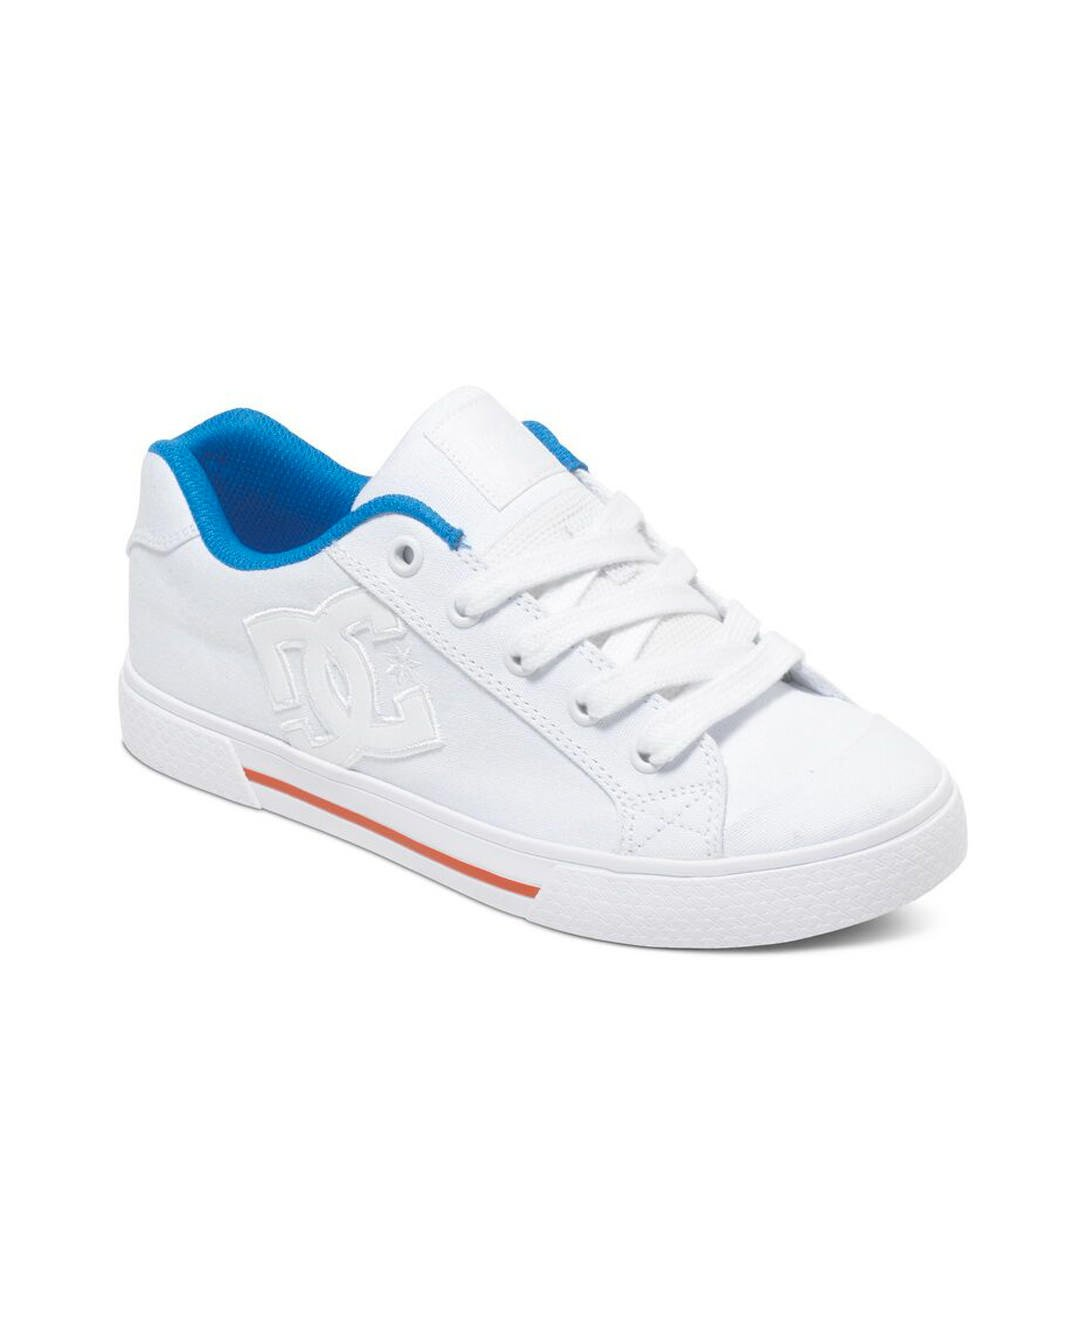 DC SHOES SCARPE CHELSEA TX - LM BOARD STORE